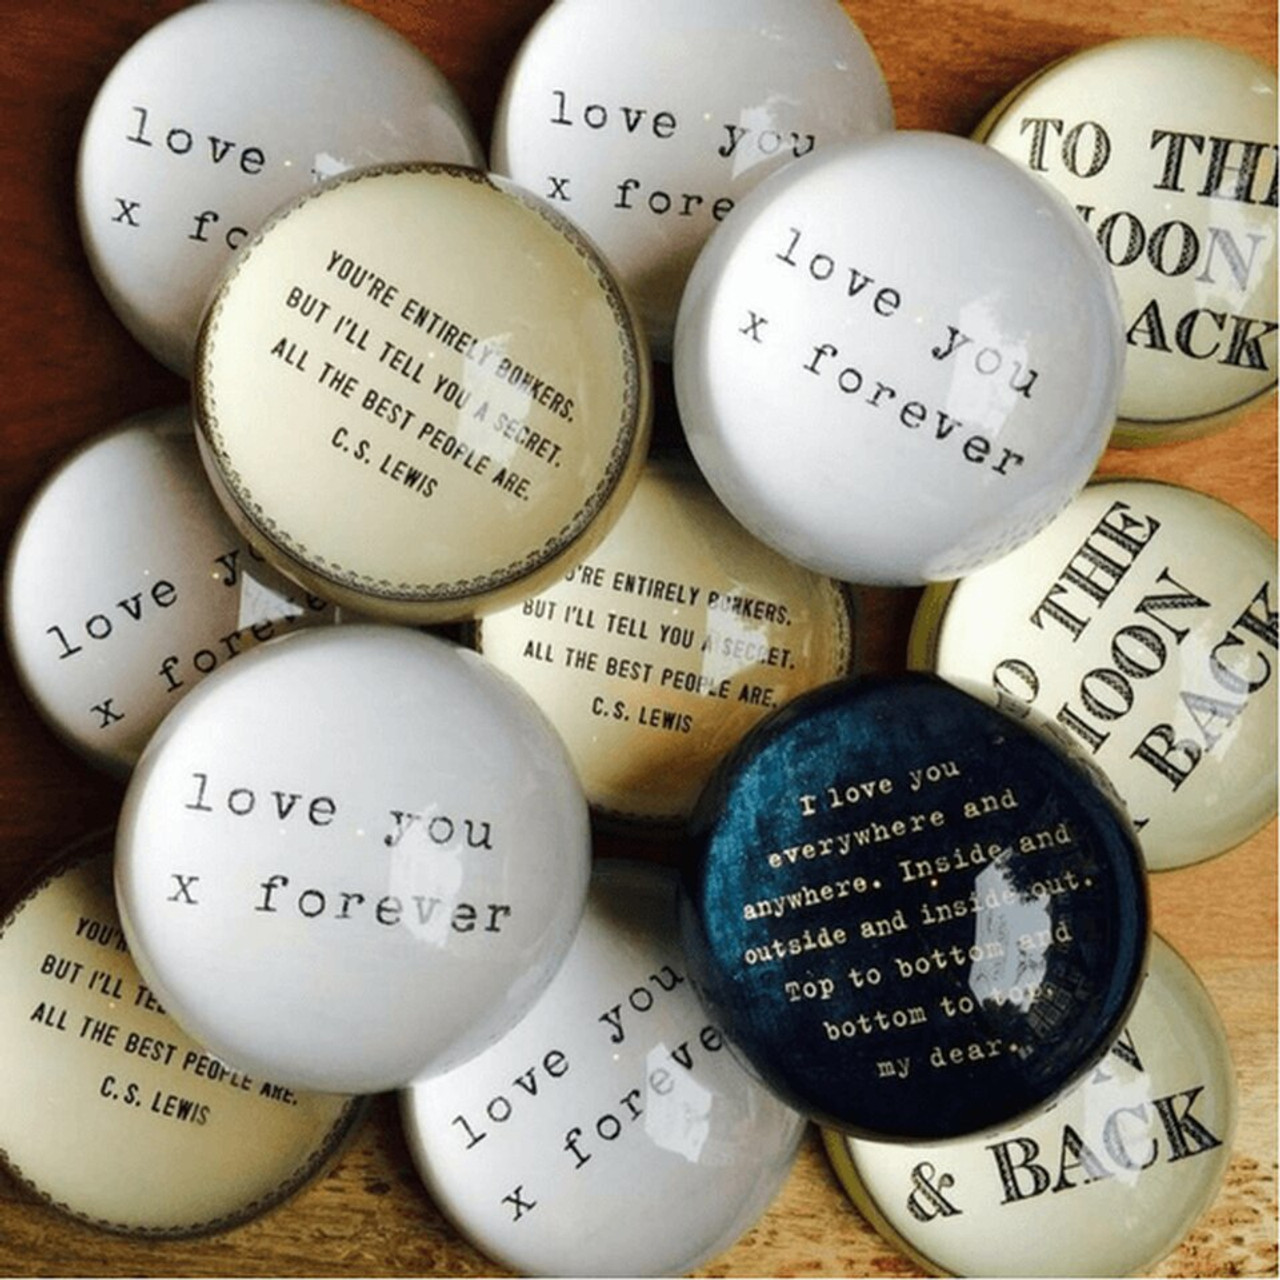 """This classic paperweight features a decorative border and a quote from Lewis Carroll: """"You're entirely bonkers. But I'll tell you a secret. All the best people are."""""""